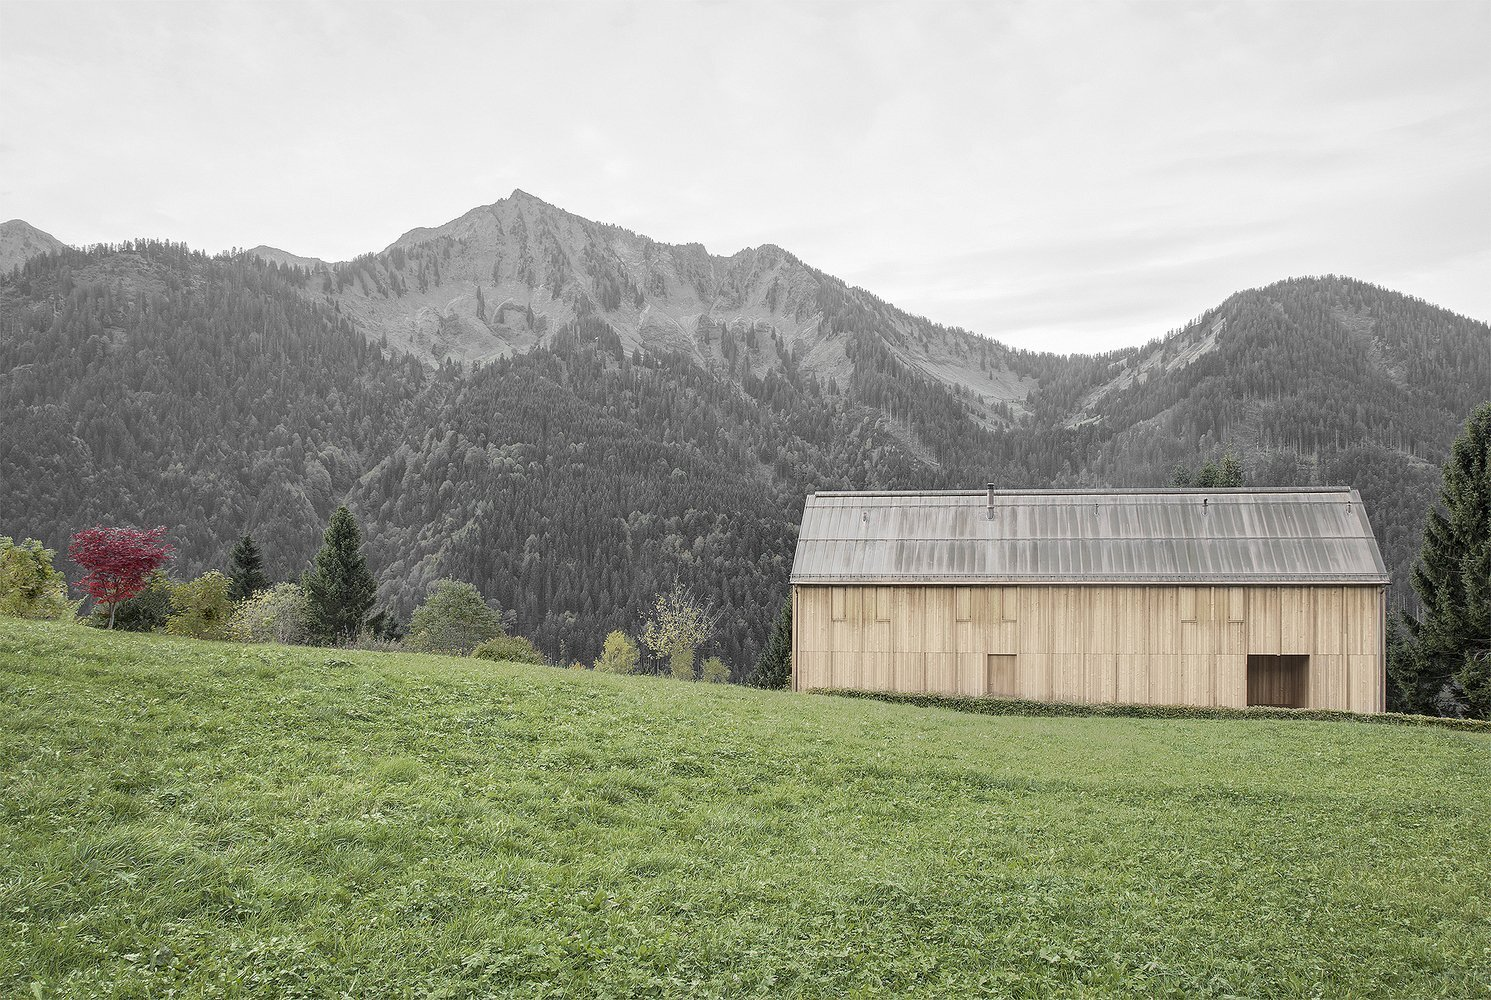 Haus am Stürcherwald - Bernardo Bader Architekten - Austria - Exterior 2 - Humble Homes